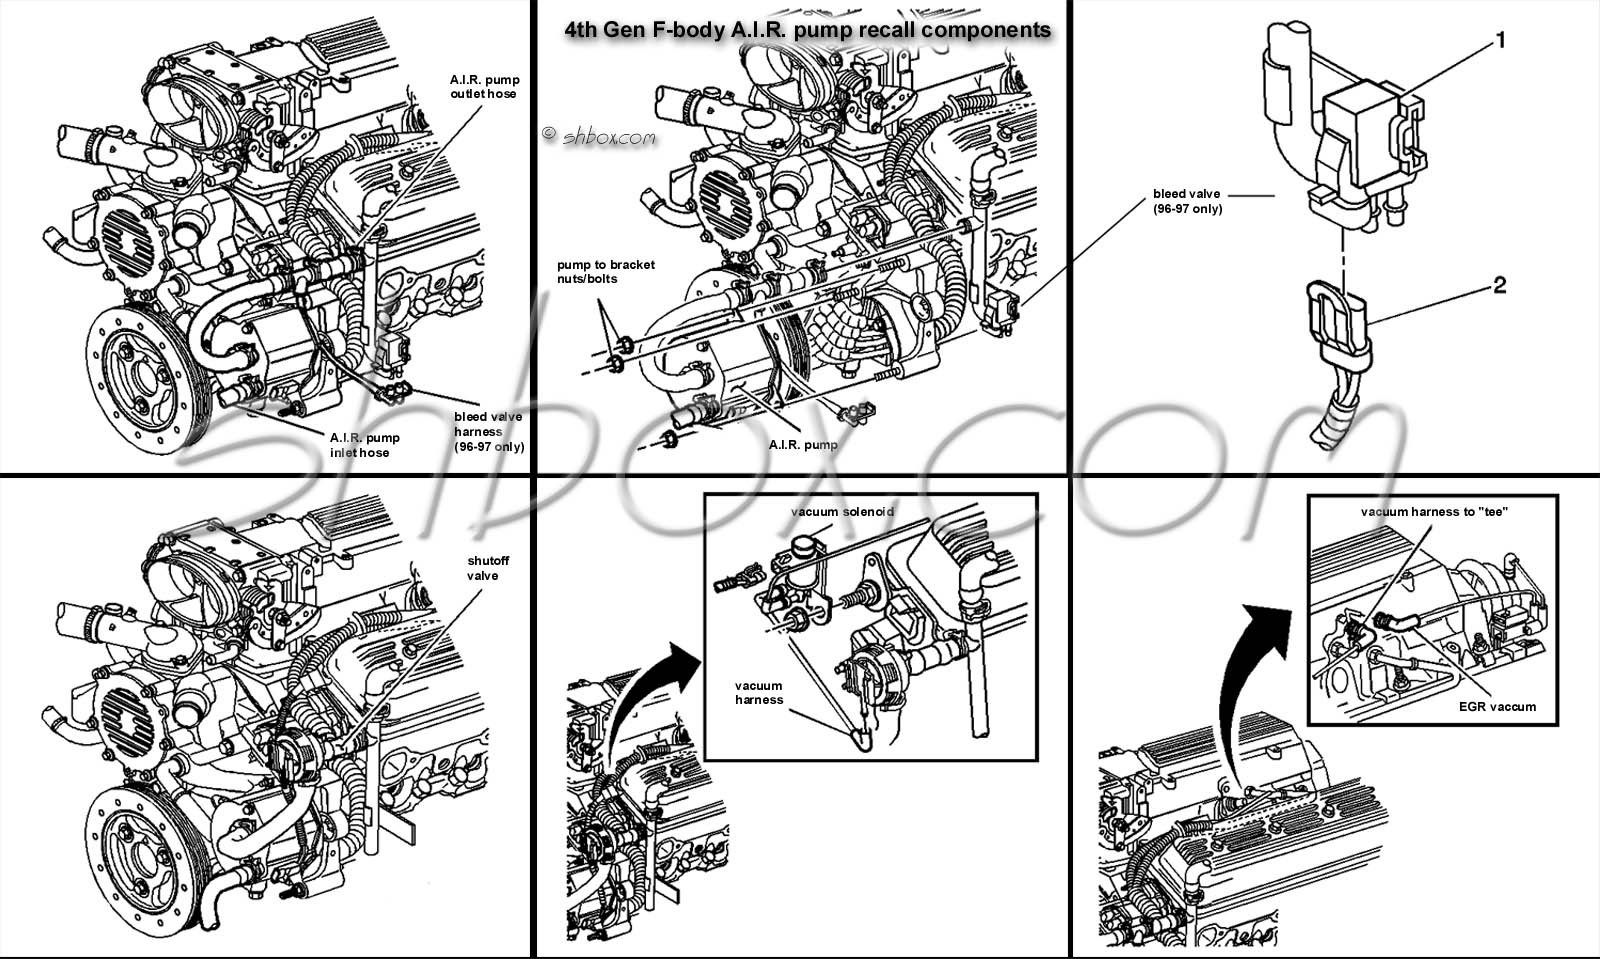 hight resolution of 4th gen lt1 f body tech aids drawings exploded views timing chain diagram lt1 engine